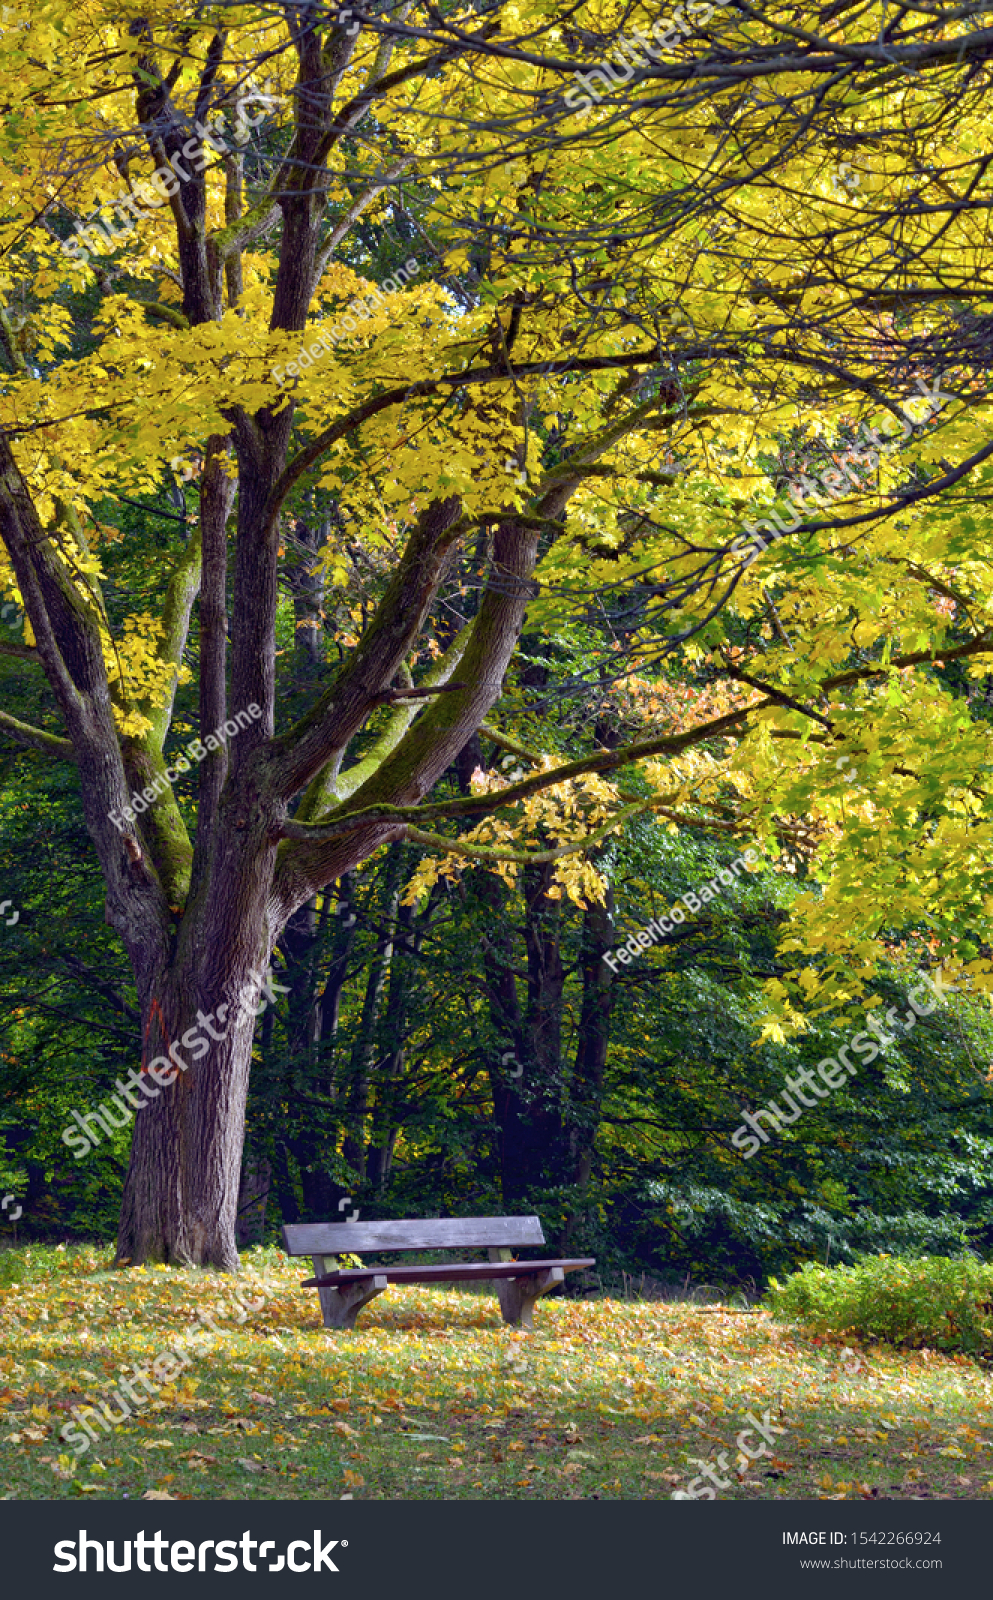 stock-photo-autumn-in-park-bench-with-ye